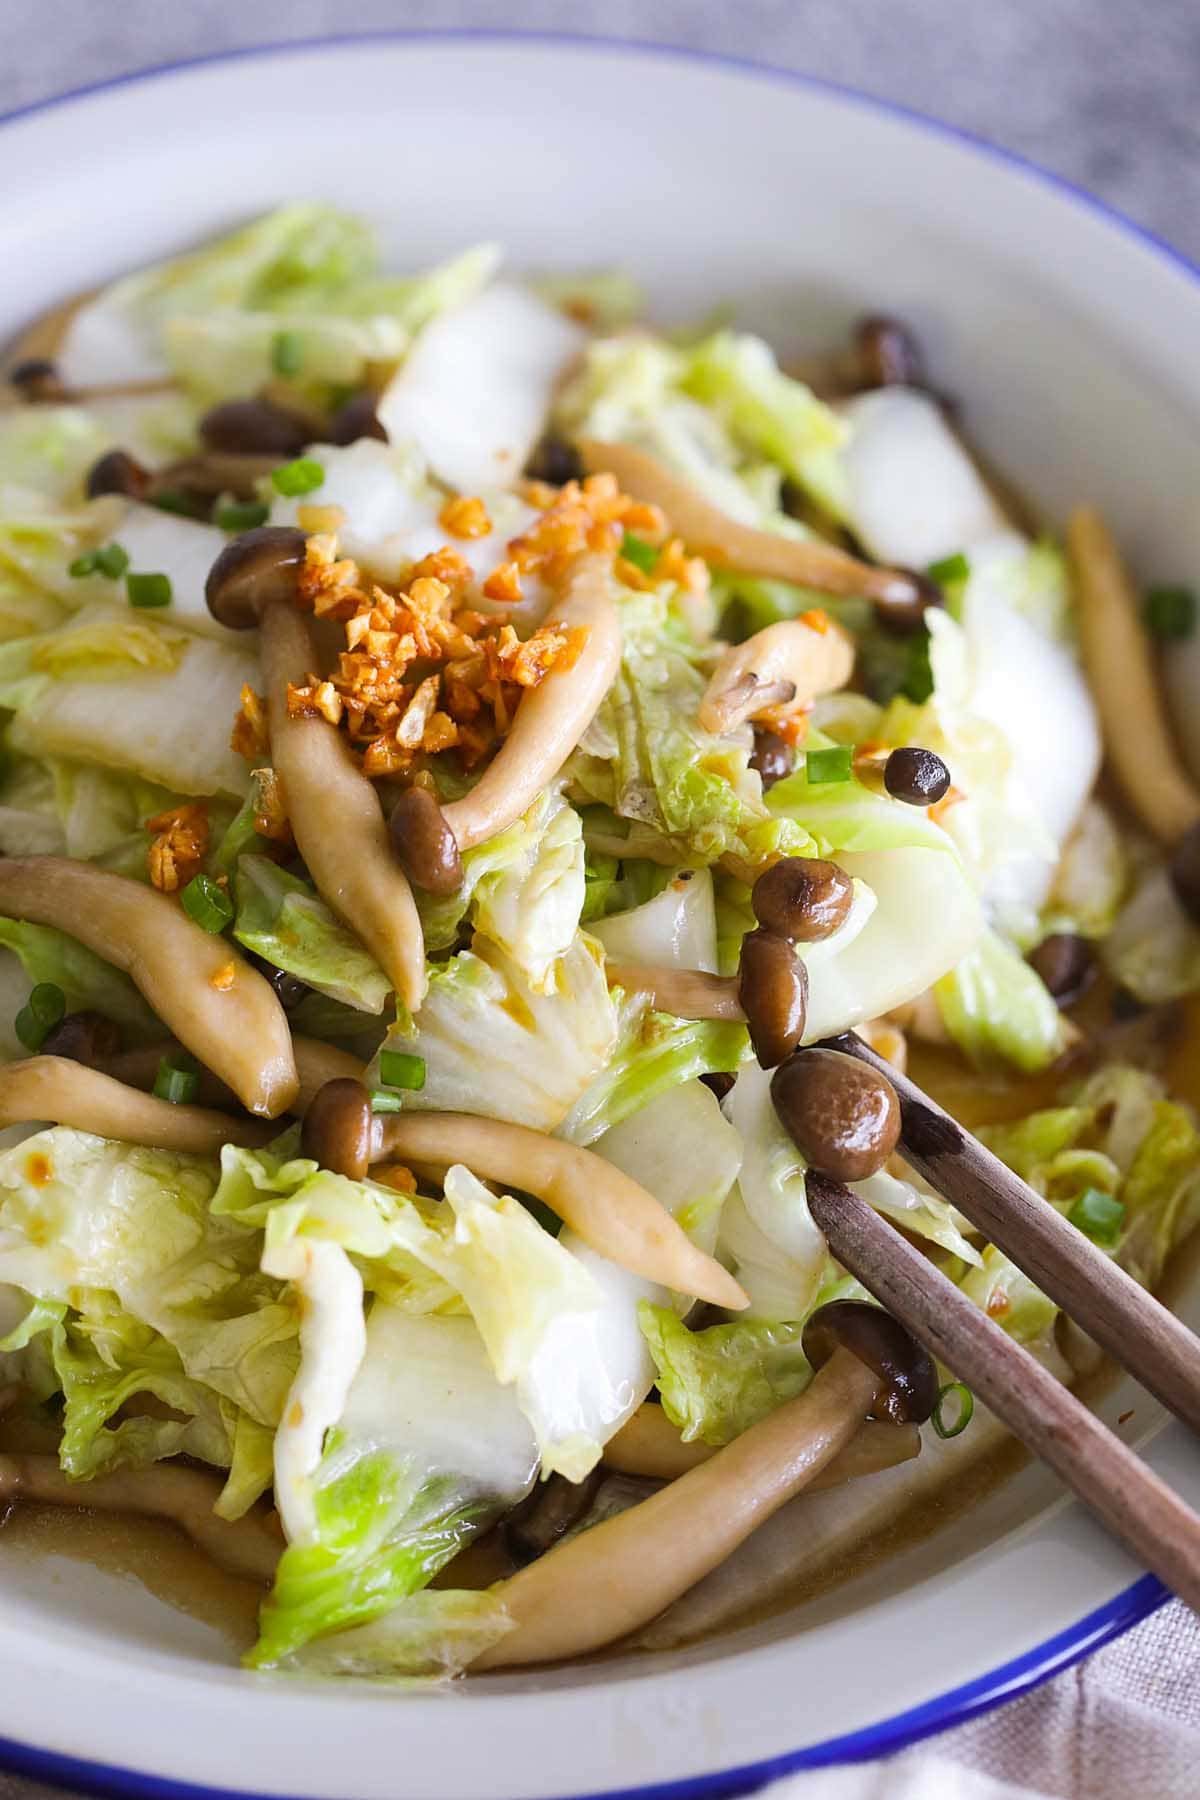 Napa cabbage stir fry with mushroom on a plate.